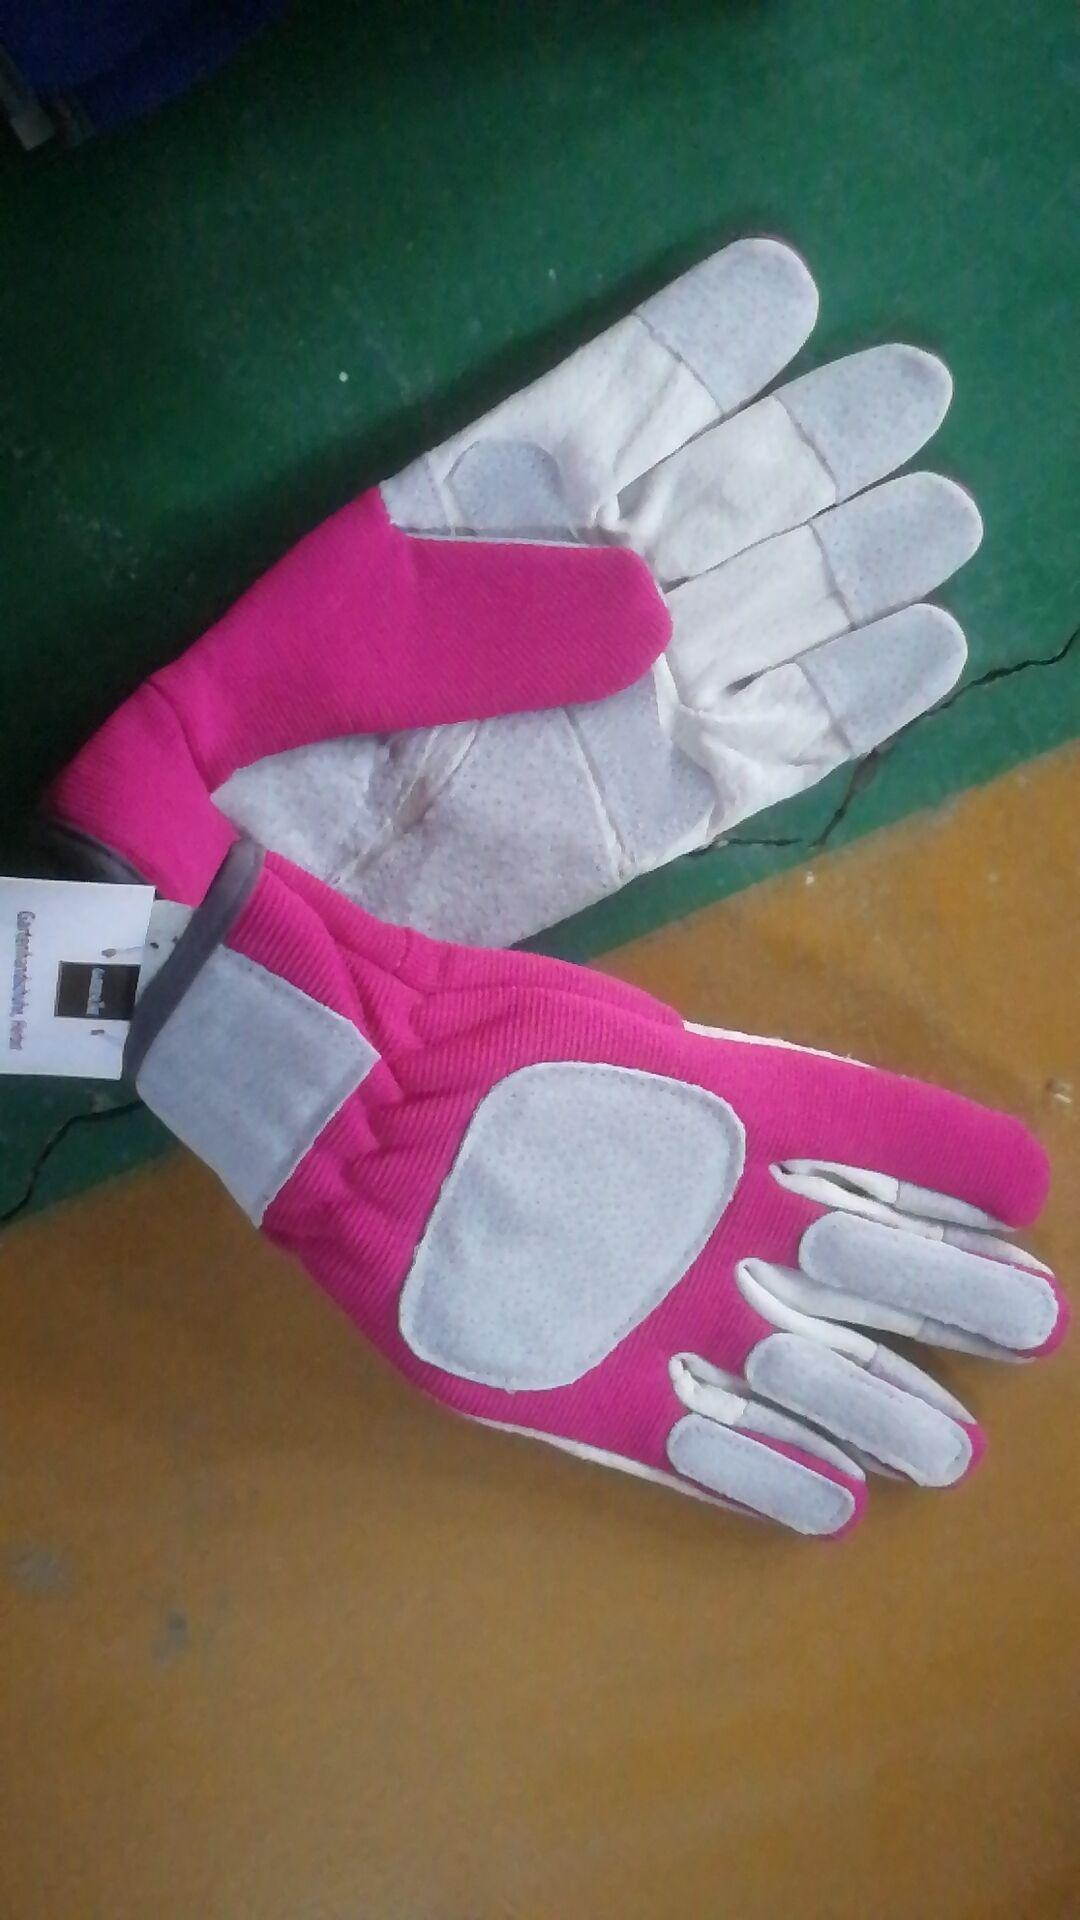 Glove & Jewelry! Check Good Quality & Cheap Stock-lots, Amigos!